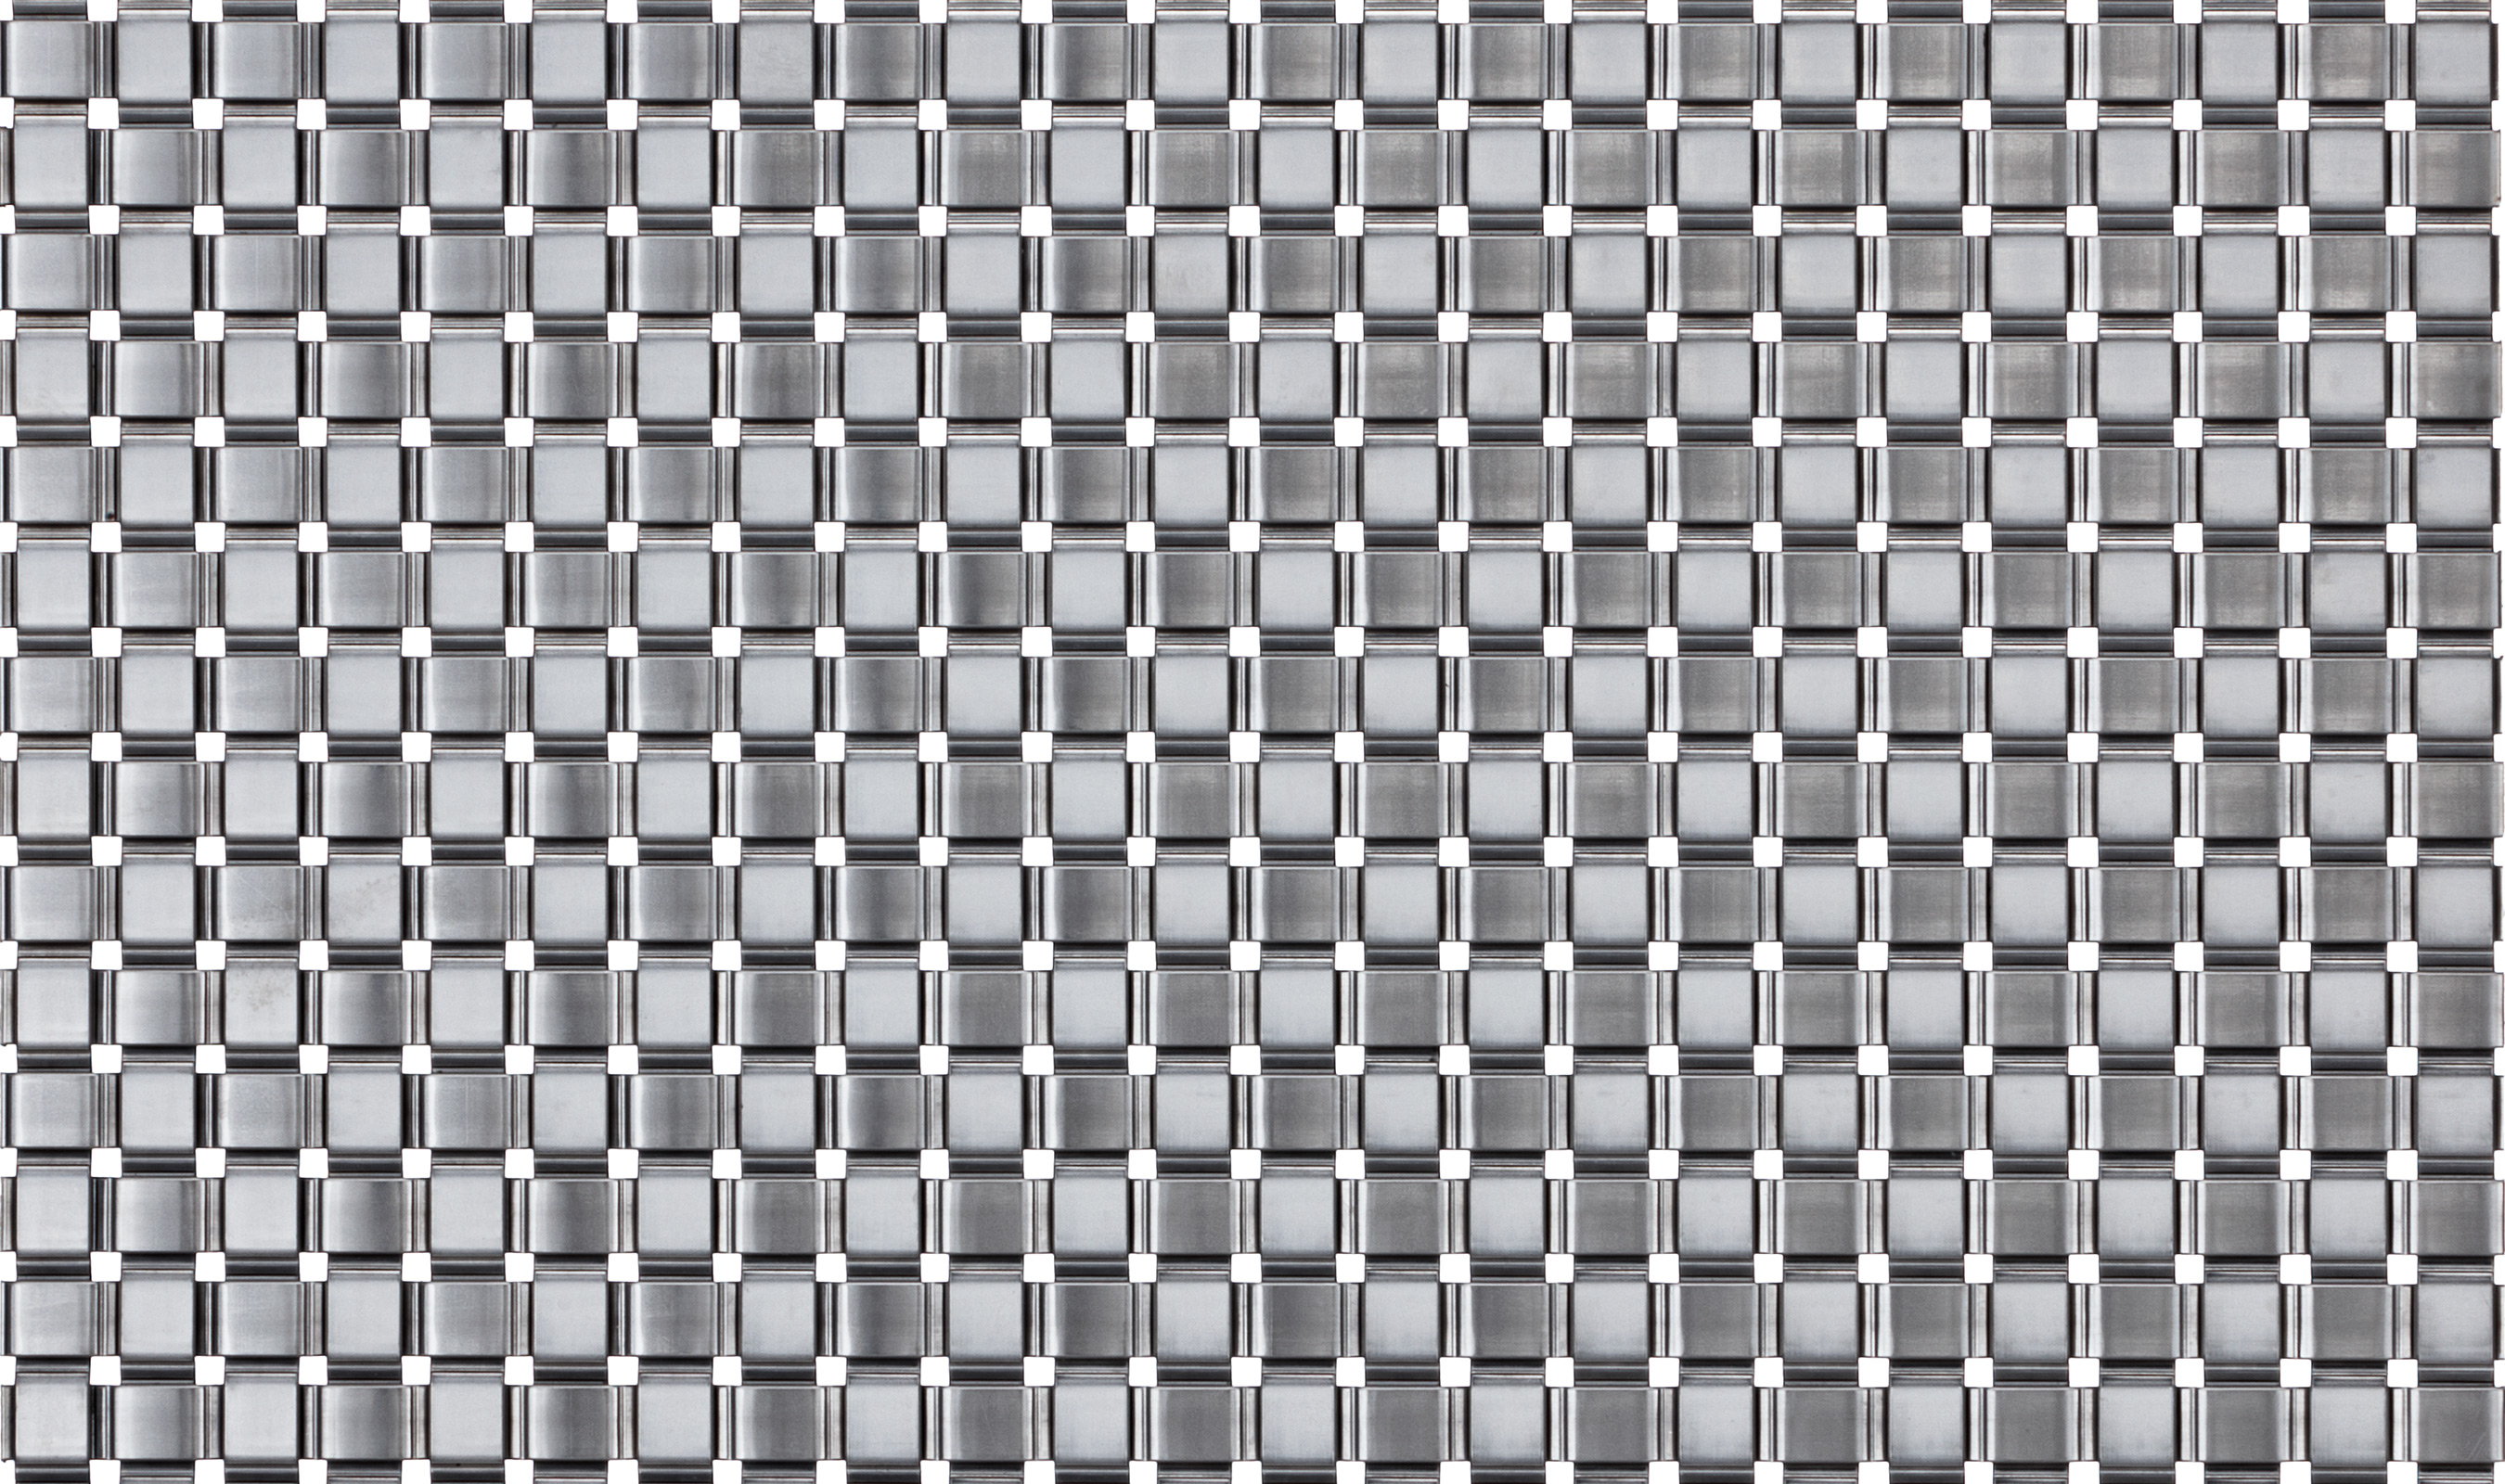 S-13 in Stainless Woven Wire Mesh